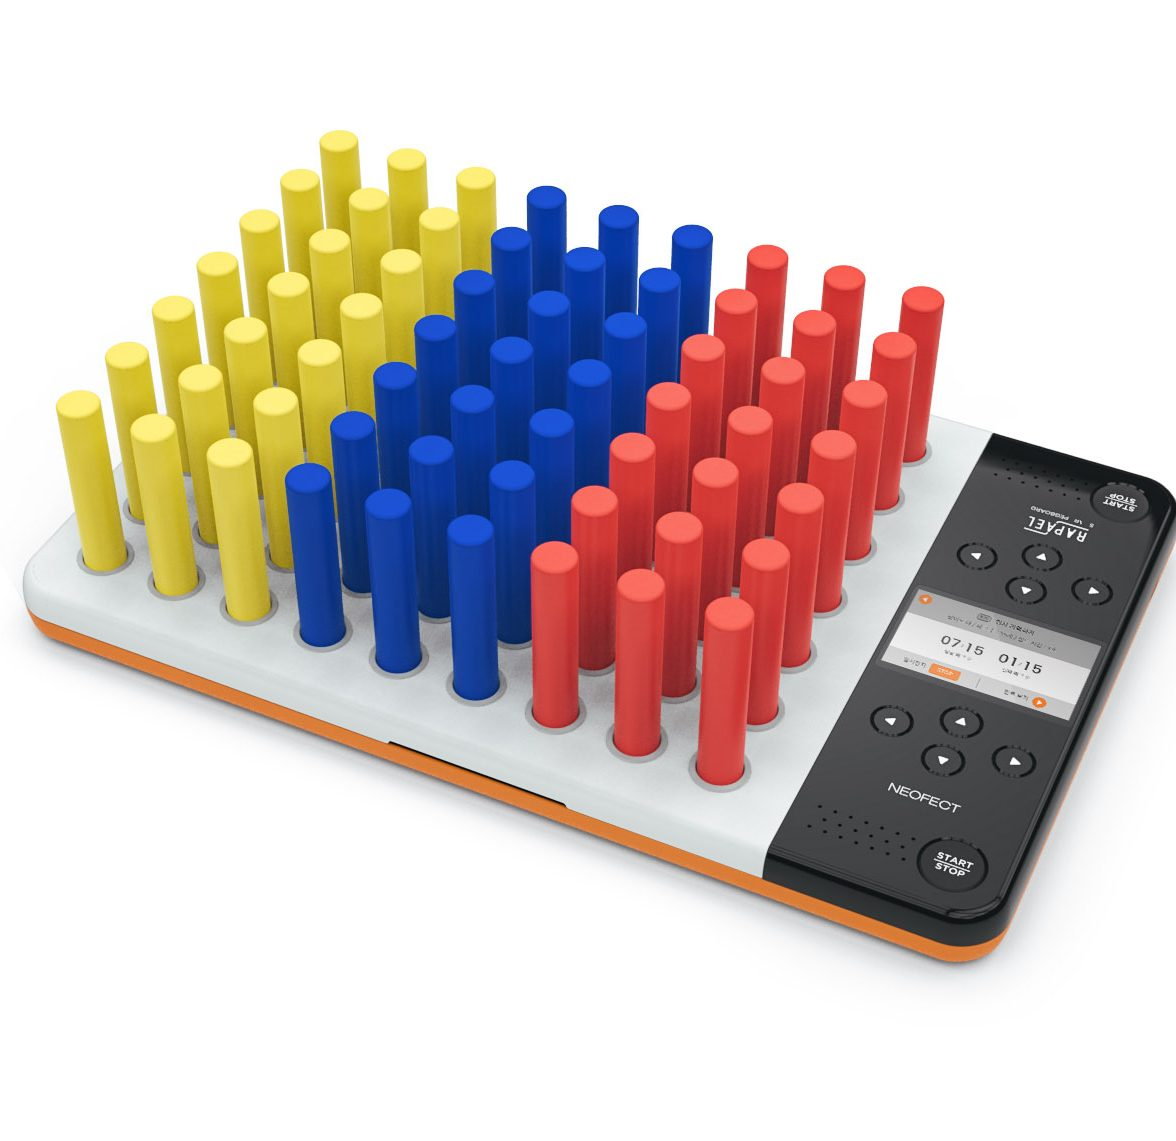 Neofect Smart Pegboard mit runden Pegs